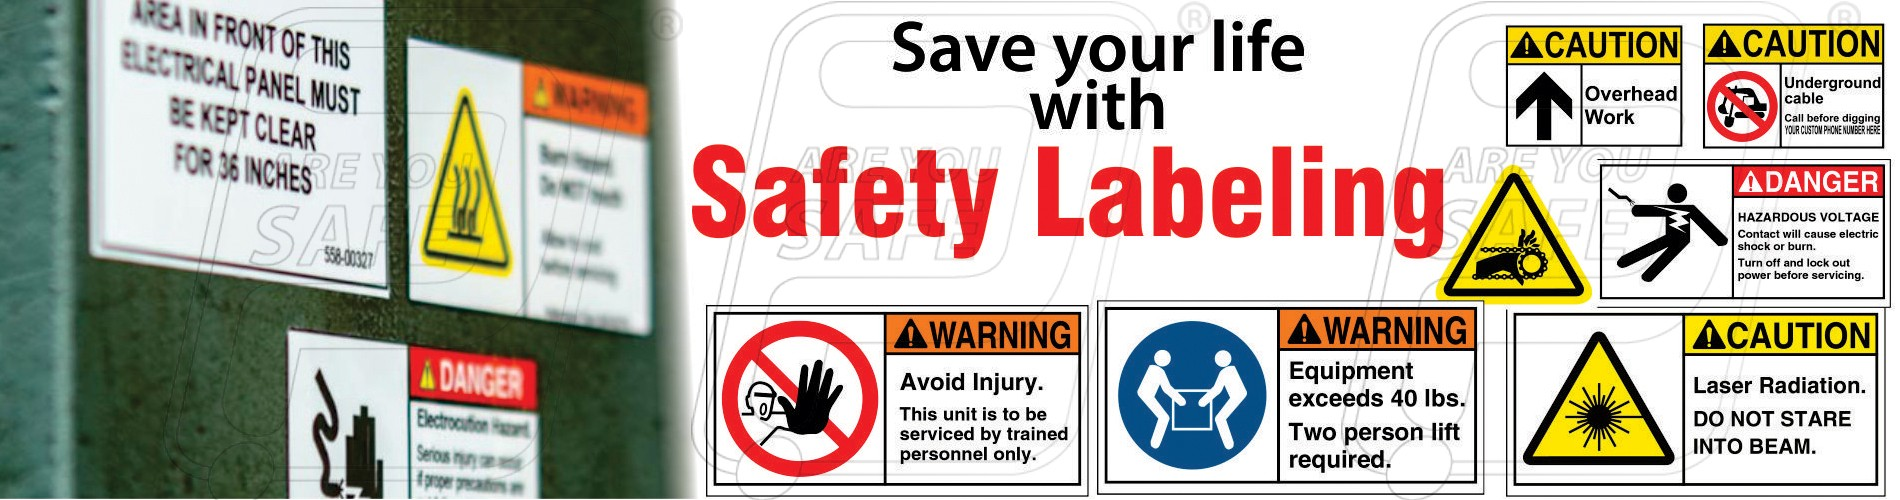 Safety Labeling